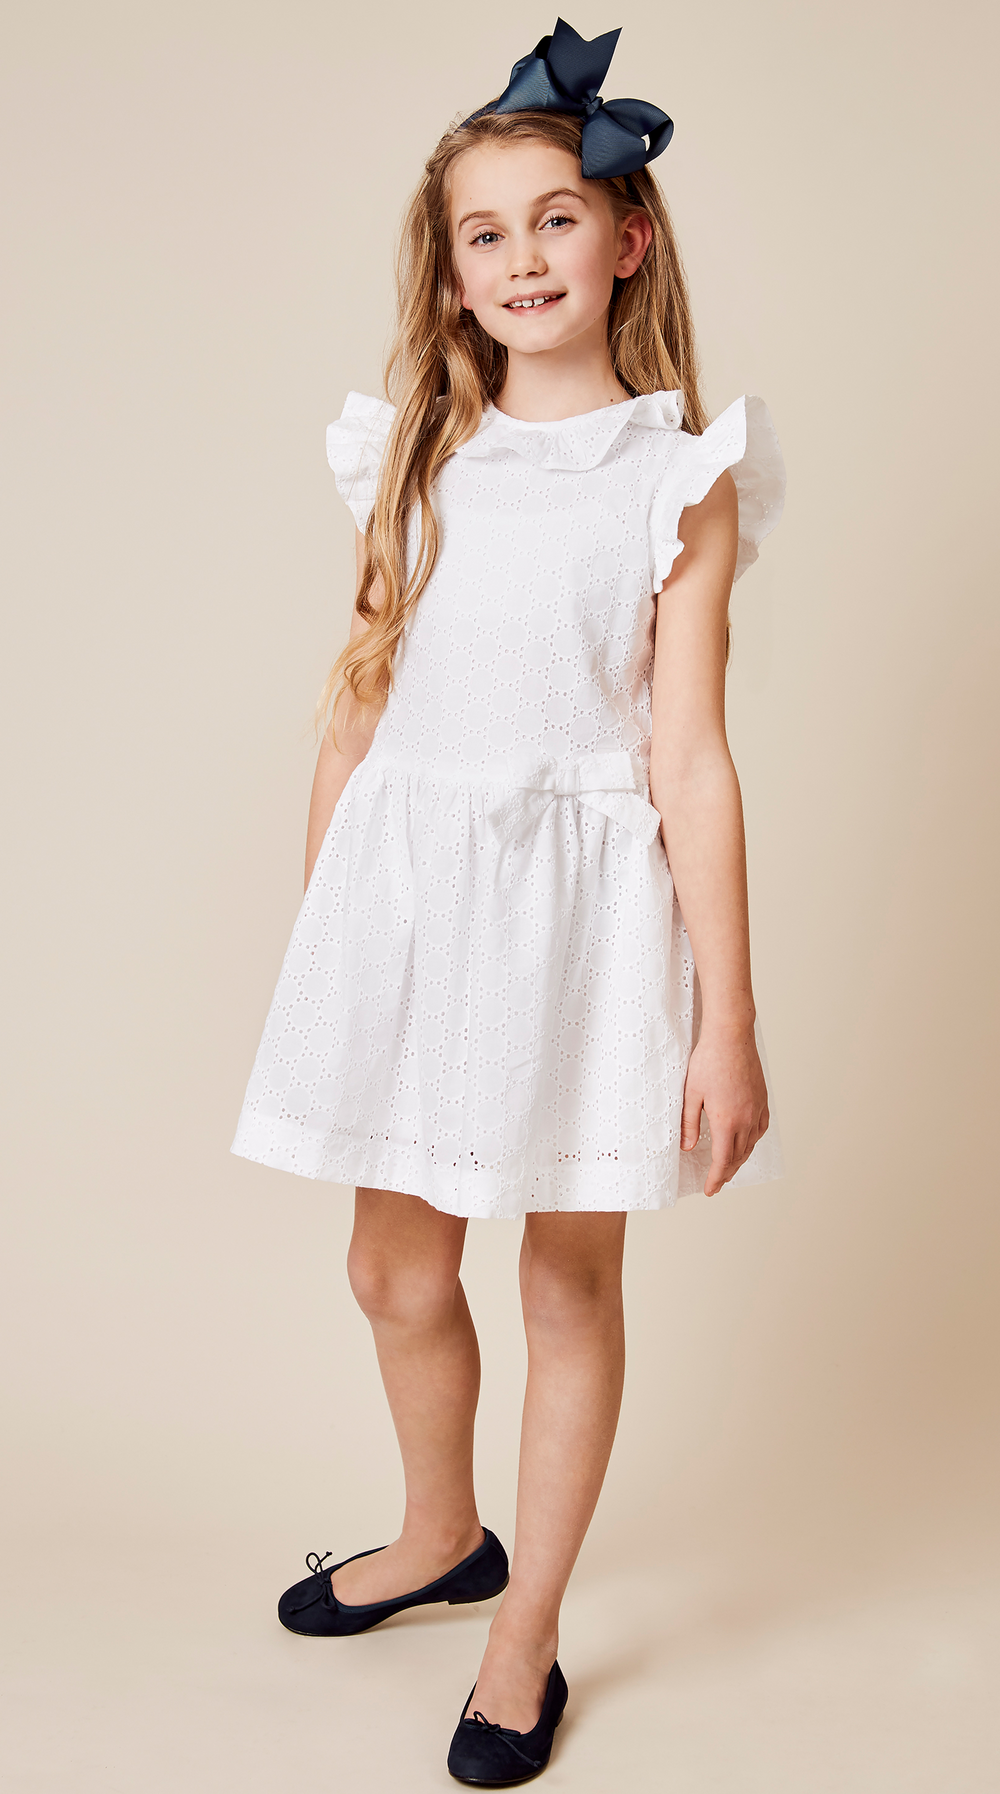 711921fd62bbdb Traditional Children s Clothing